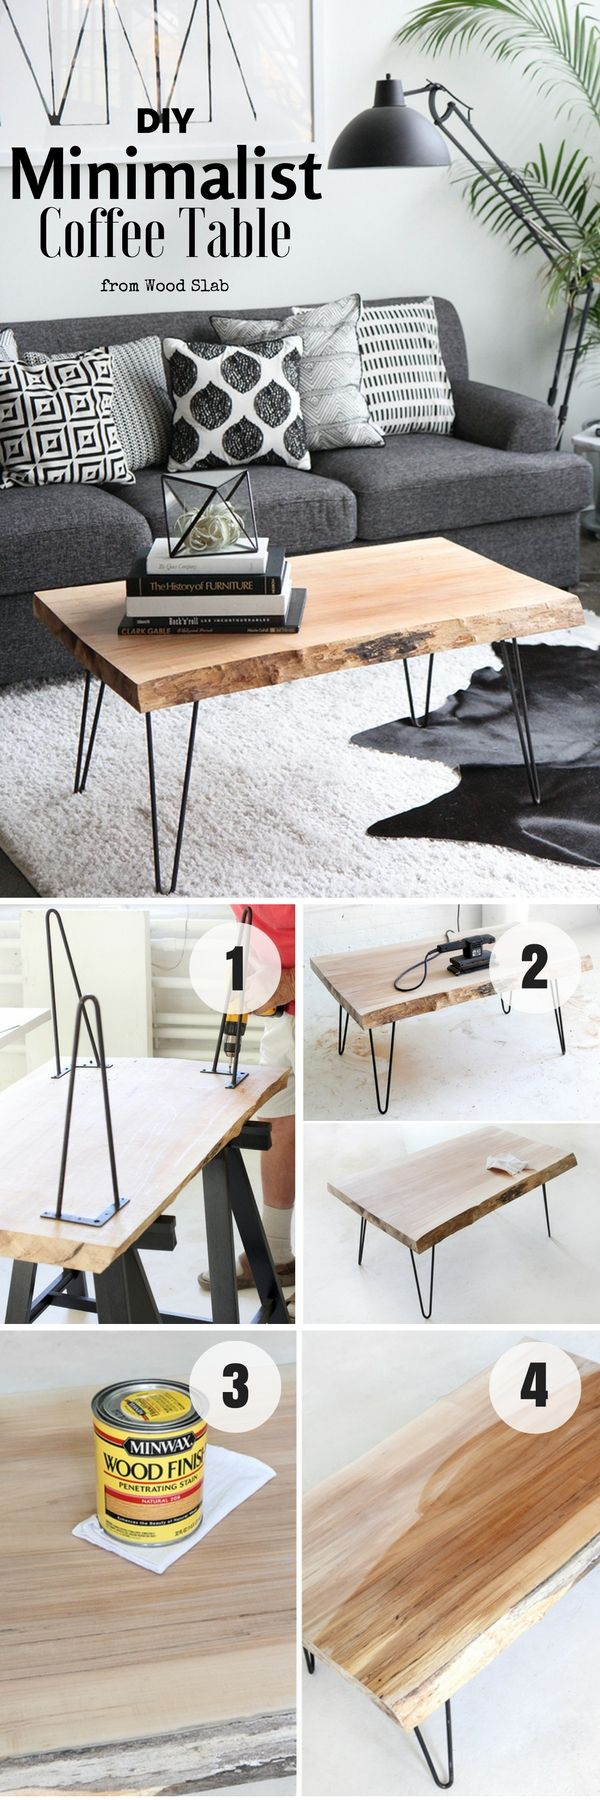 Easy To Build Coffee Table.5 Easy Diy Coffee Table Projects Home Sweet Home Diy Coffee